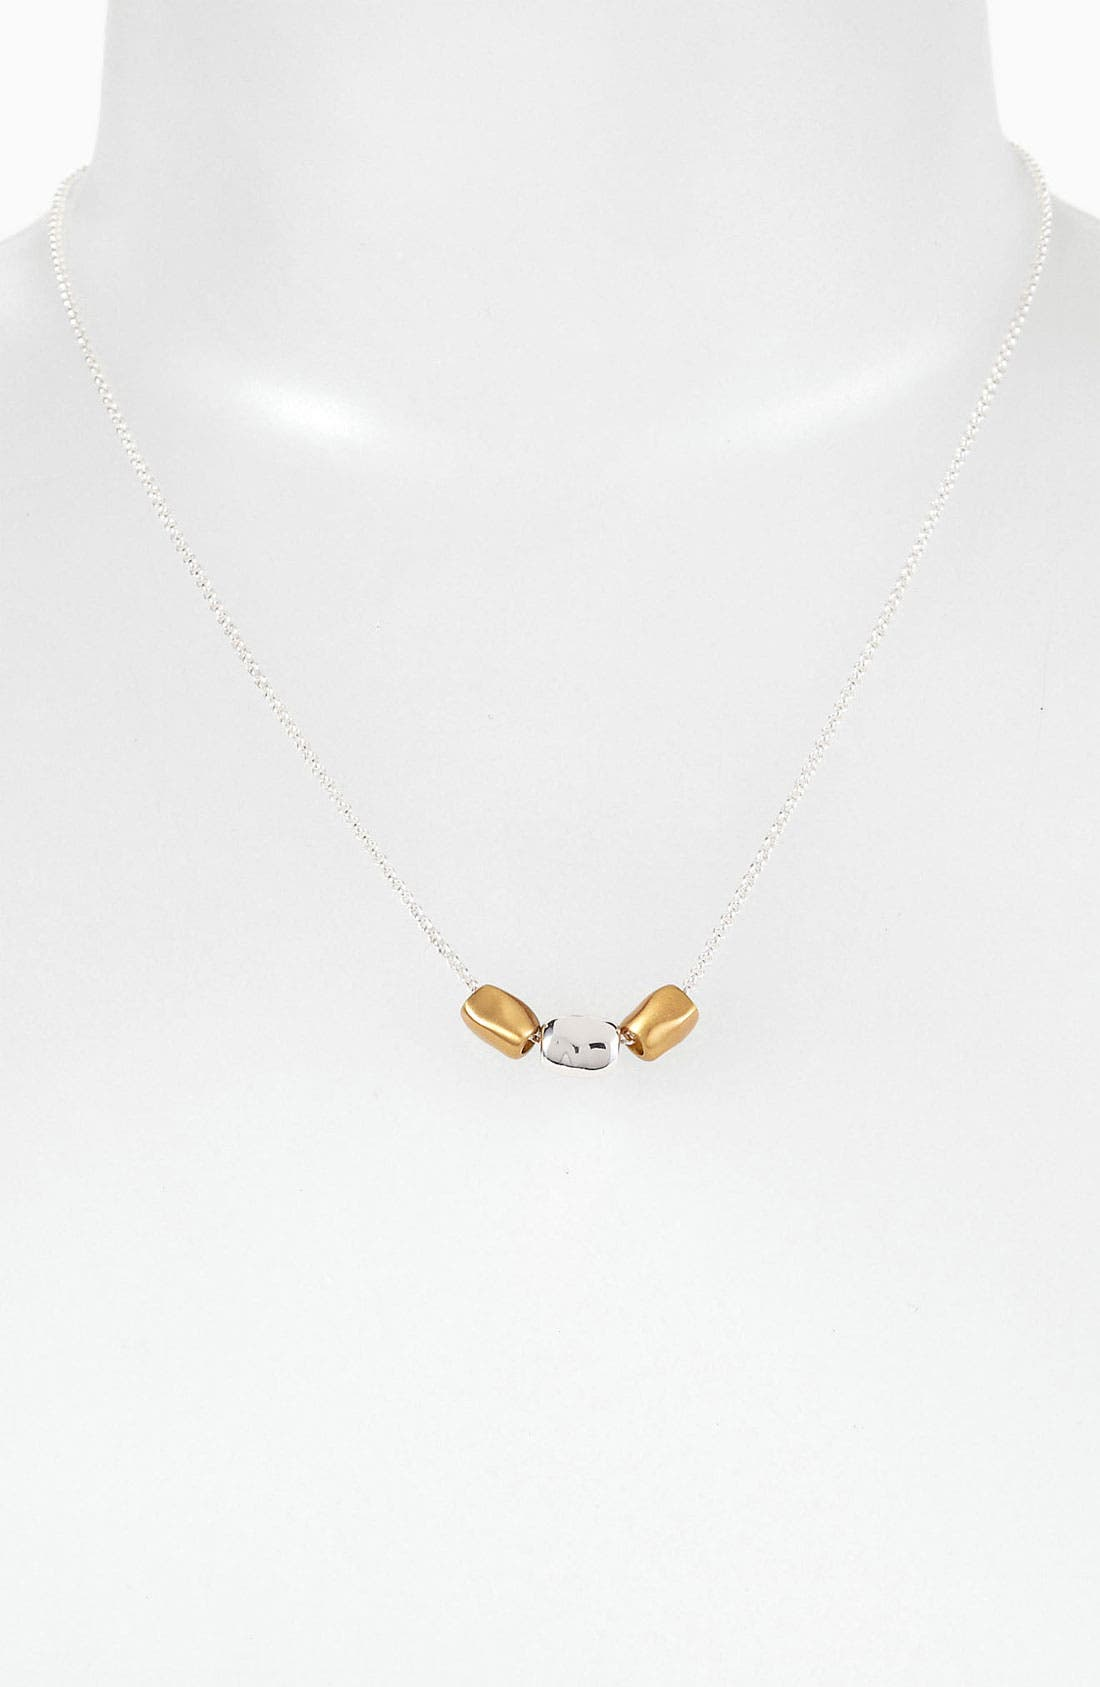 Alternate Image 1 Selected - Argento Vivo 'Bauble Bar' Two Tone Necklace (Nordstrom Exclusive)